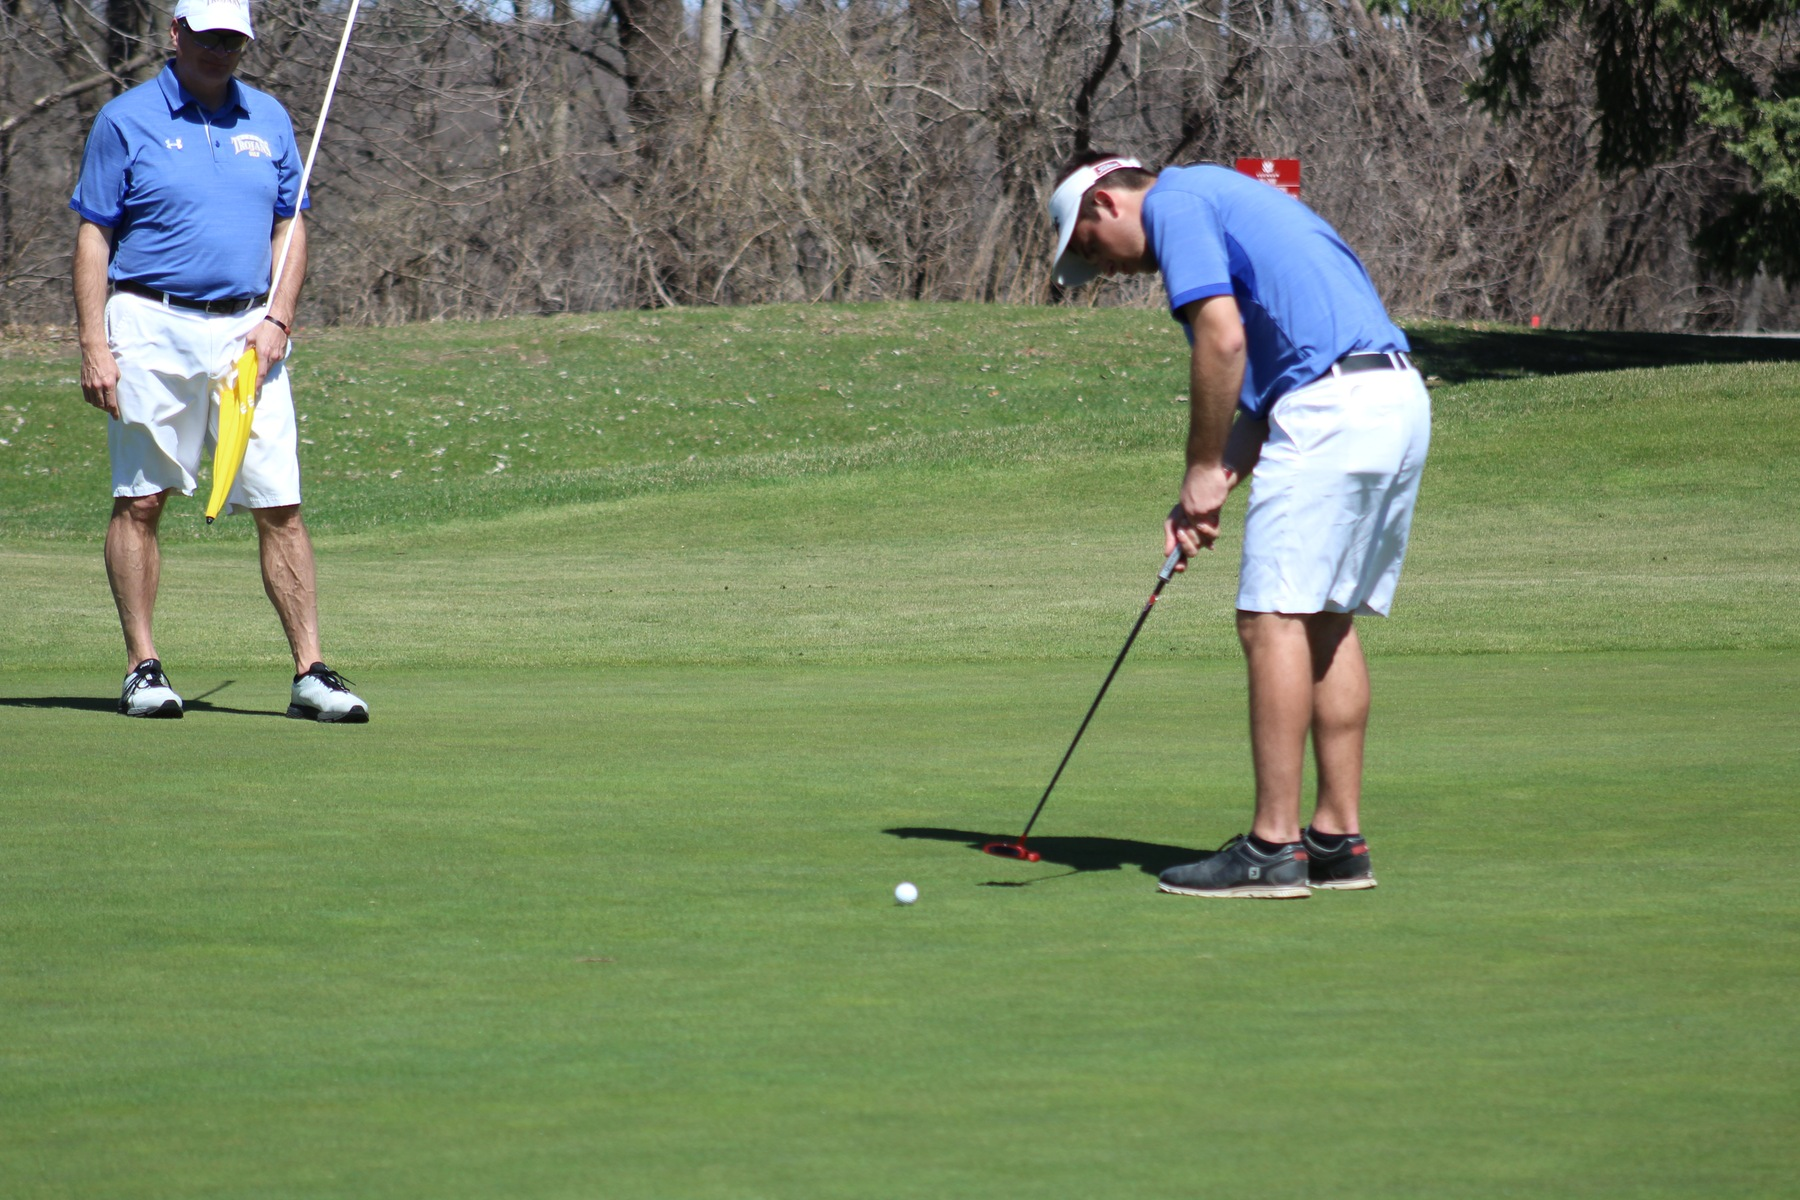 Austin Eckenrod led the Trojans with a 79 at Monday's retional preview tournament in Ames.